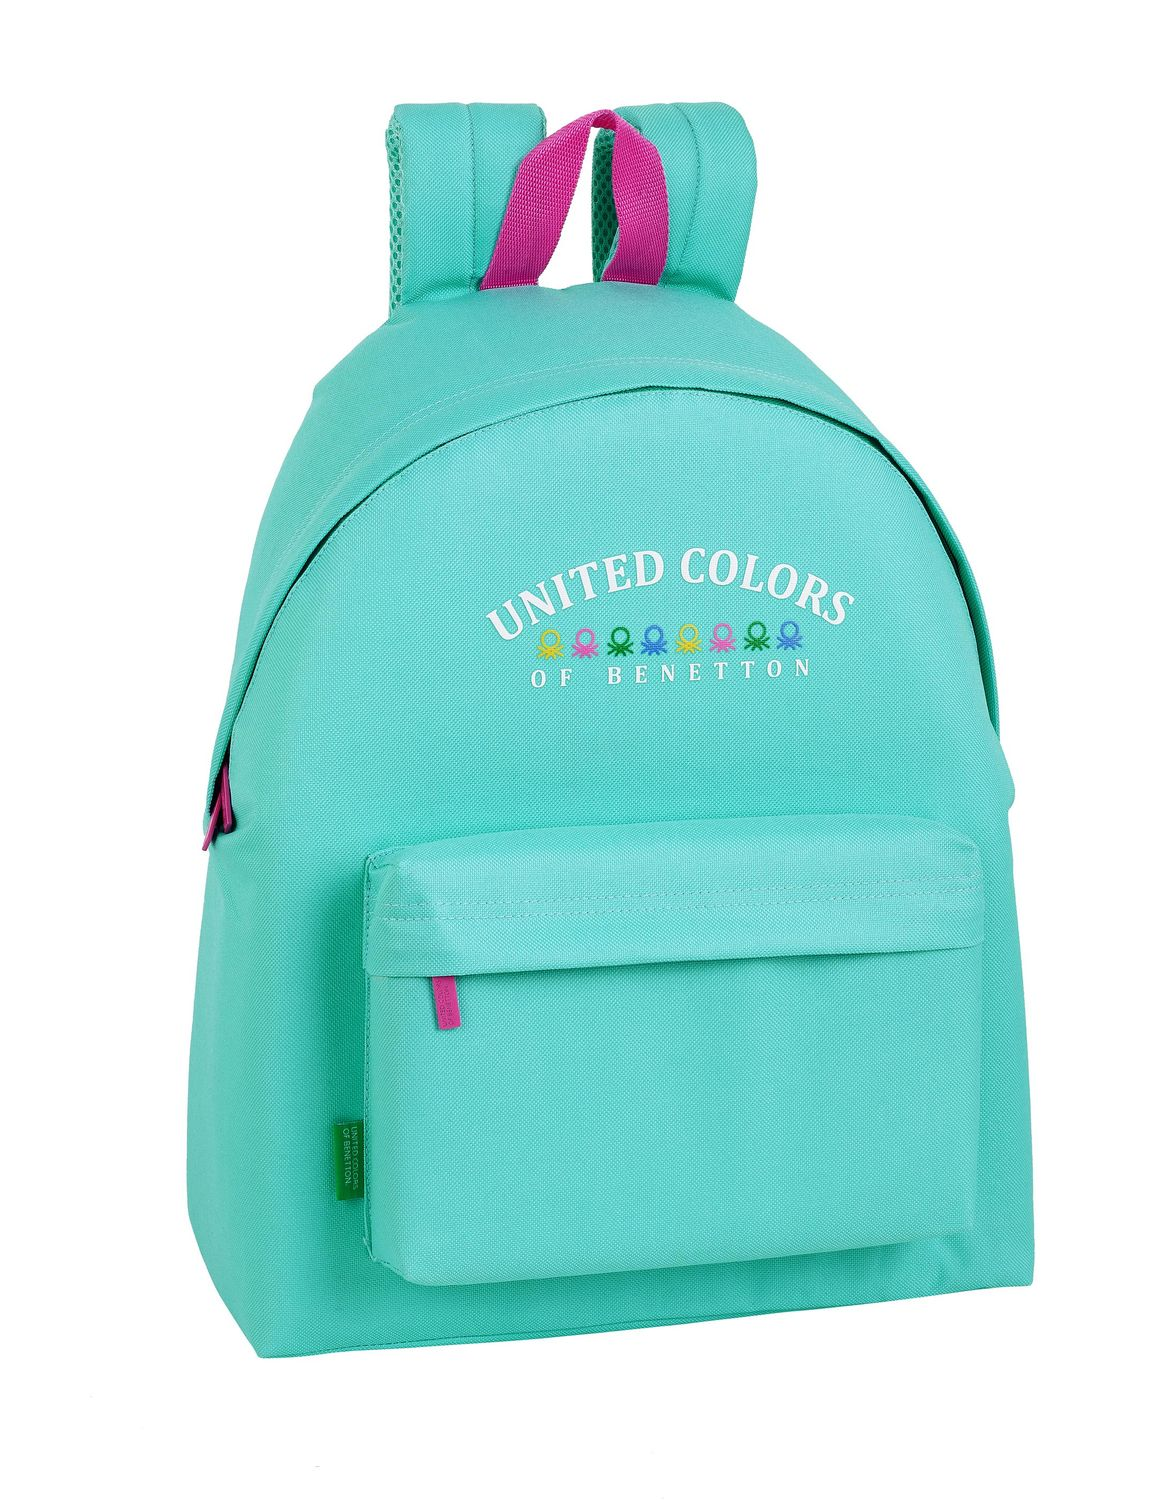 BENETTON GIRL Backpack 42 cm – image 1